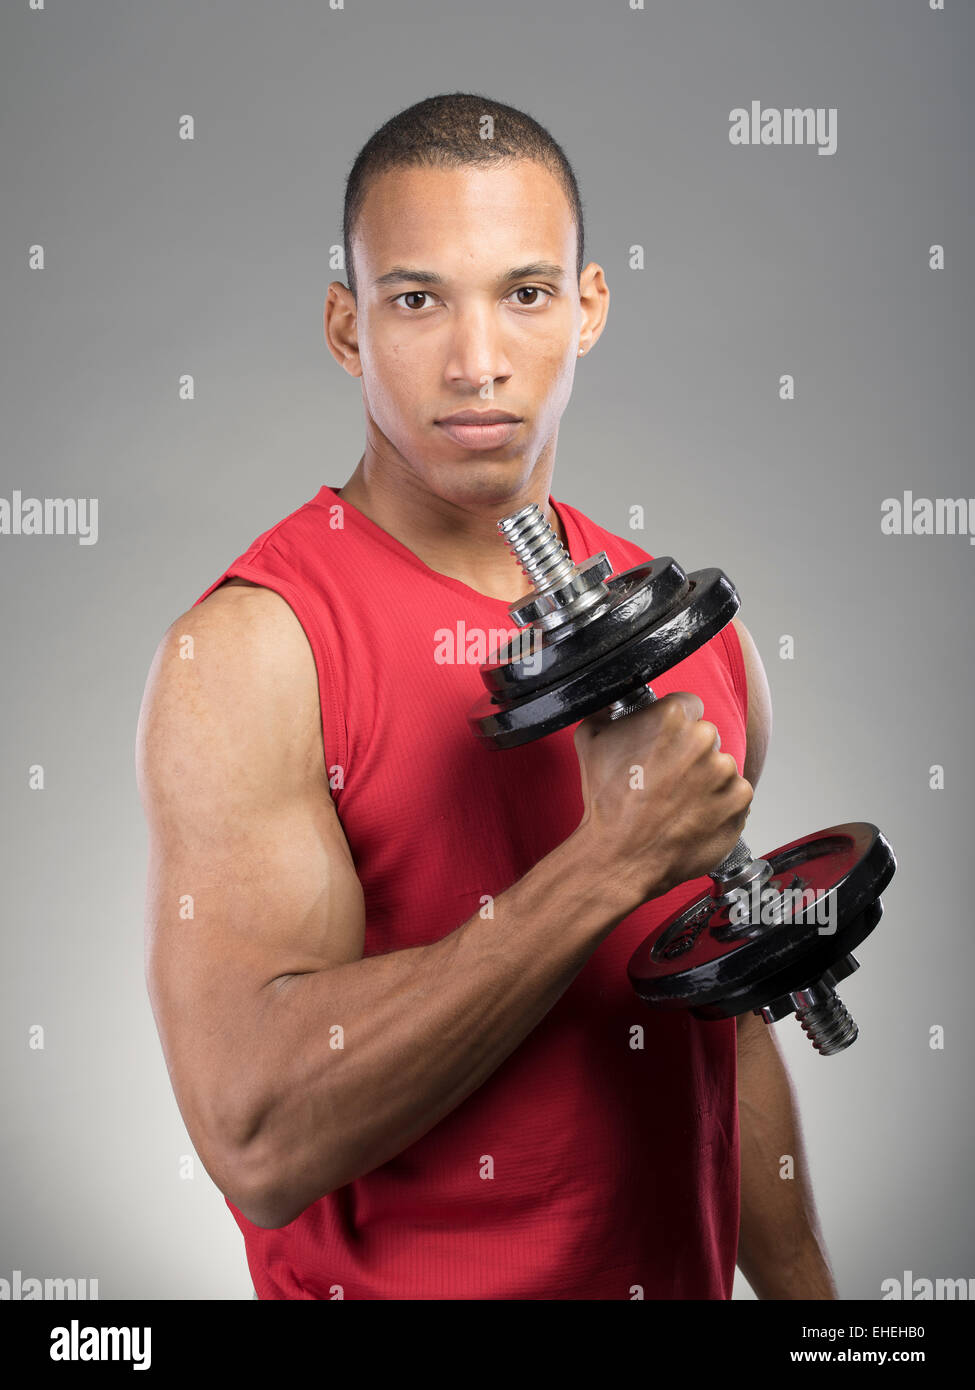 Muscular man wearing red tank top vest using barbell - Stock Image